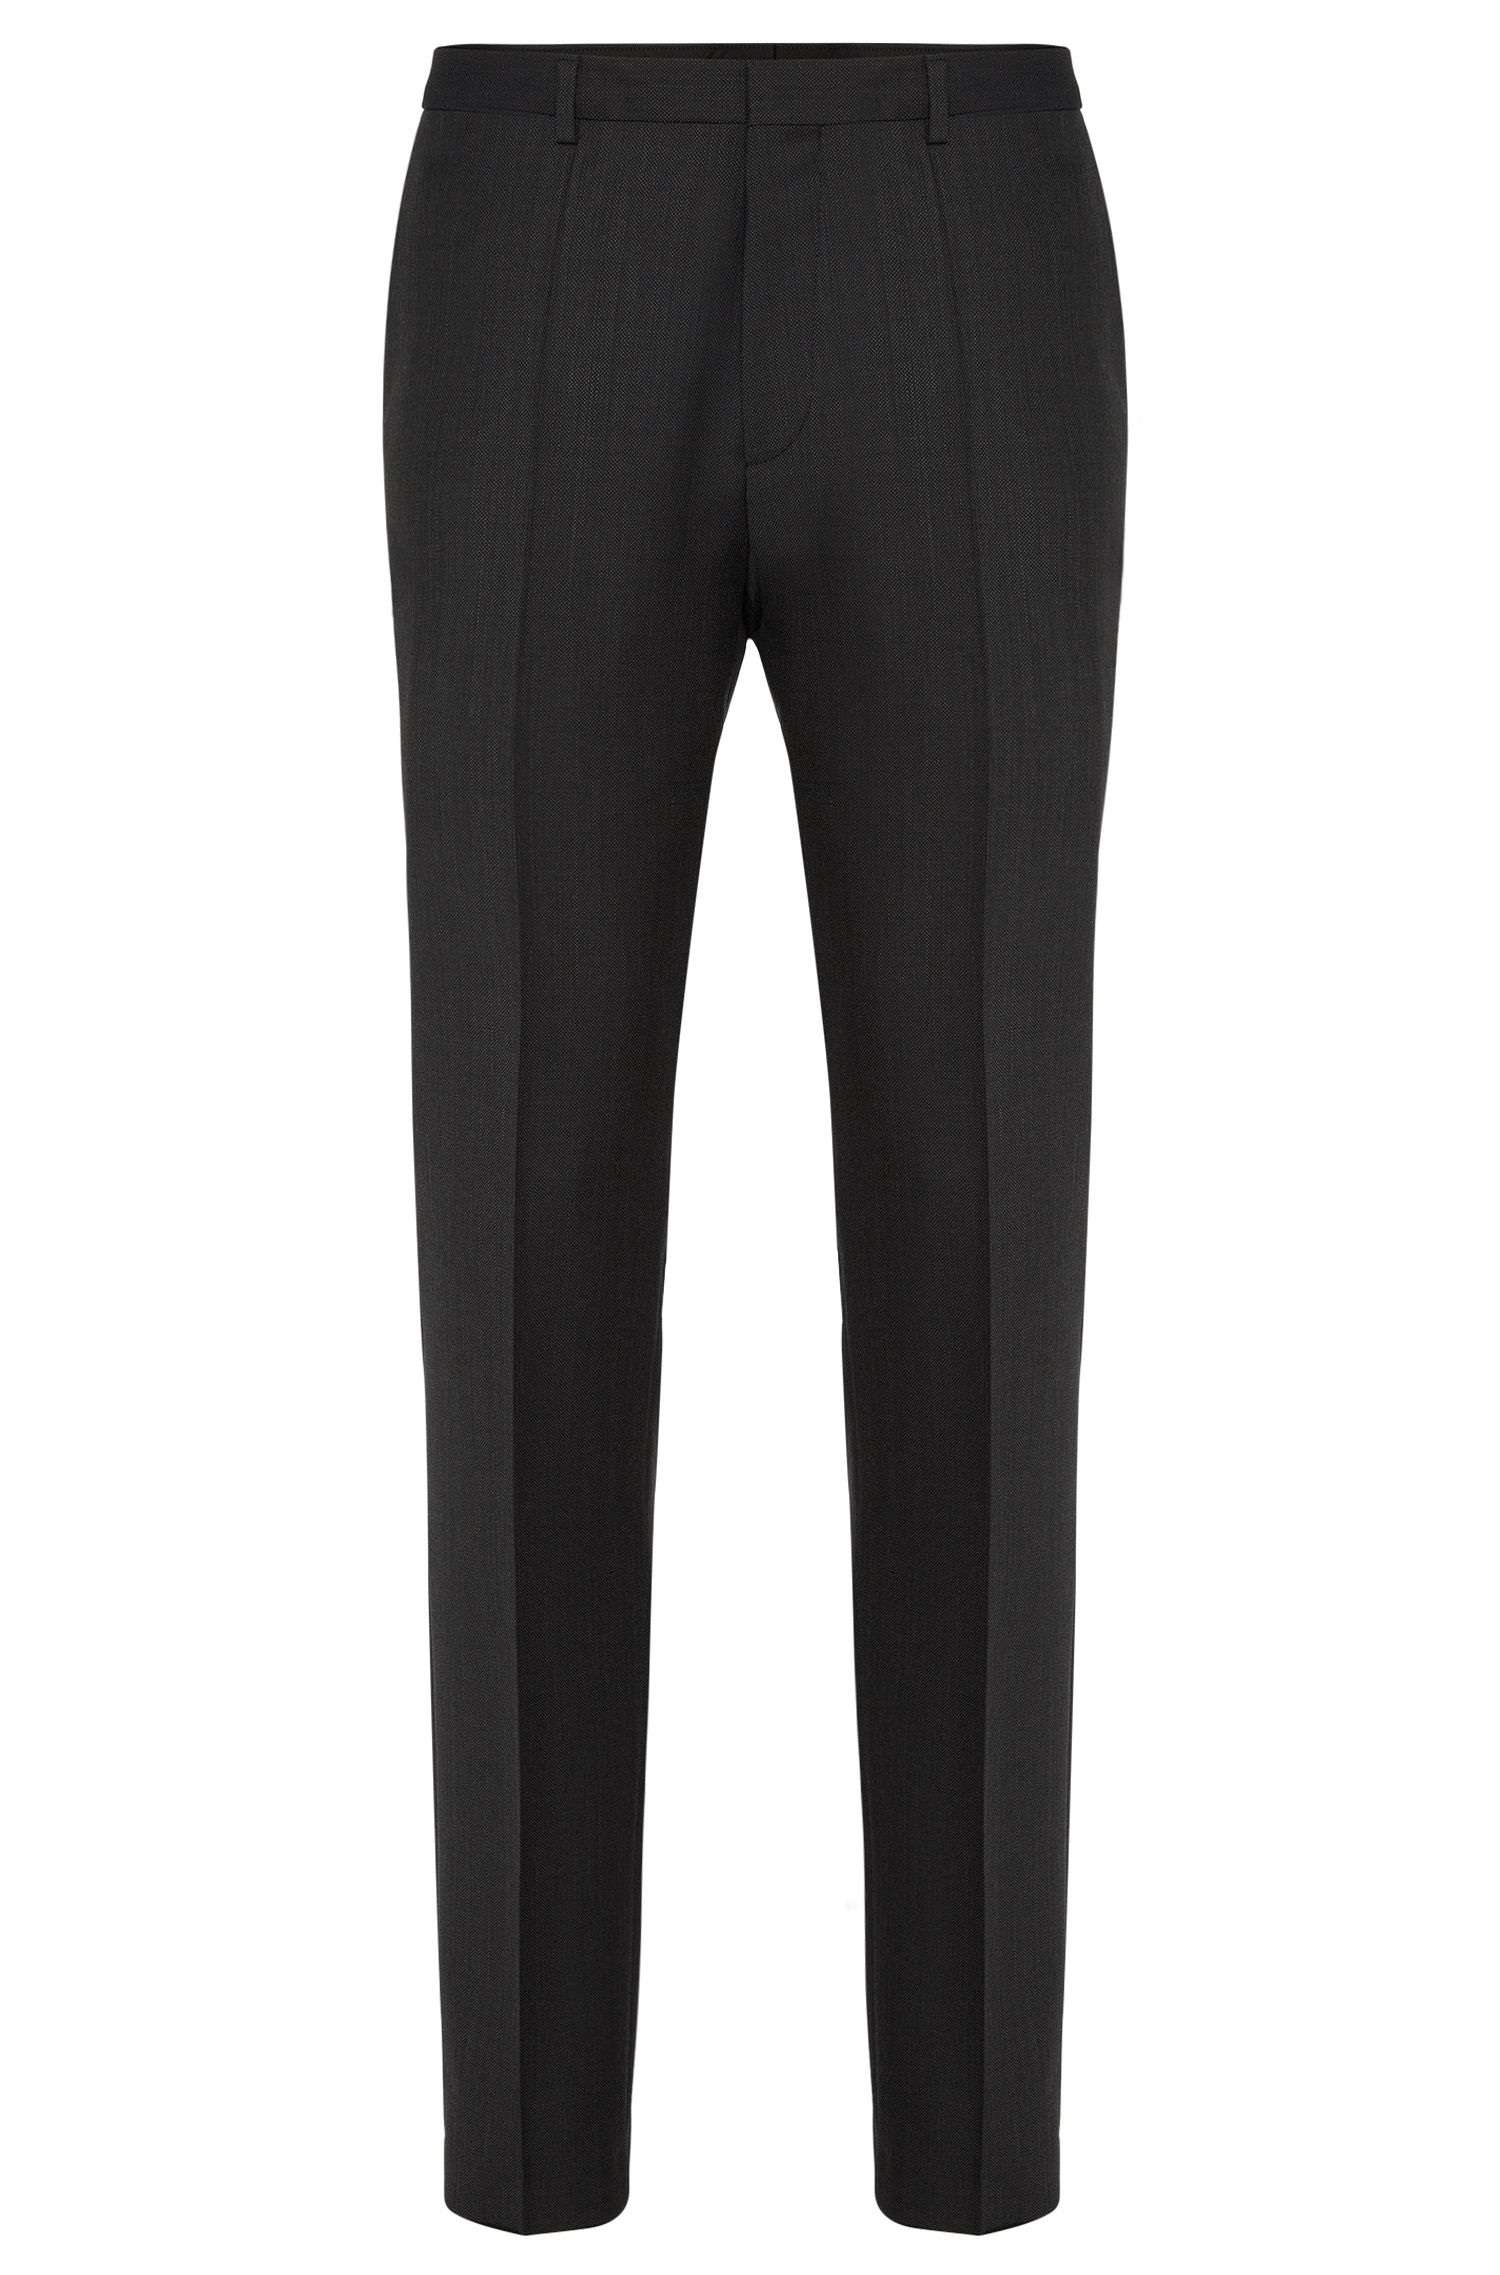 Pantalon Extra Slim Fit en laine vierge finement structurée : « HerioS »